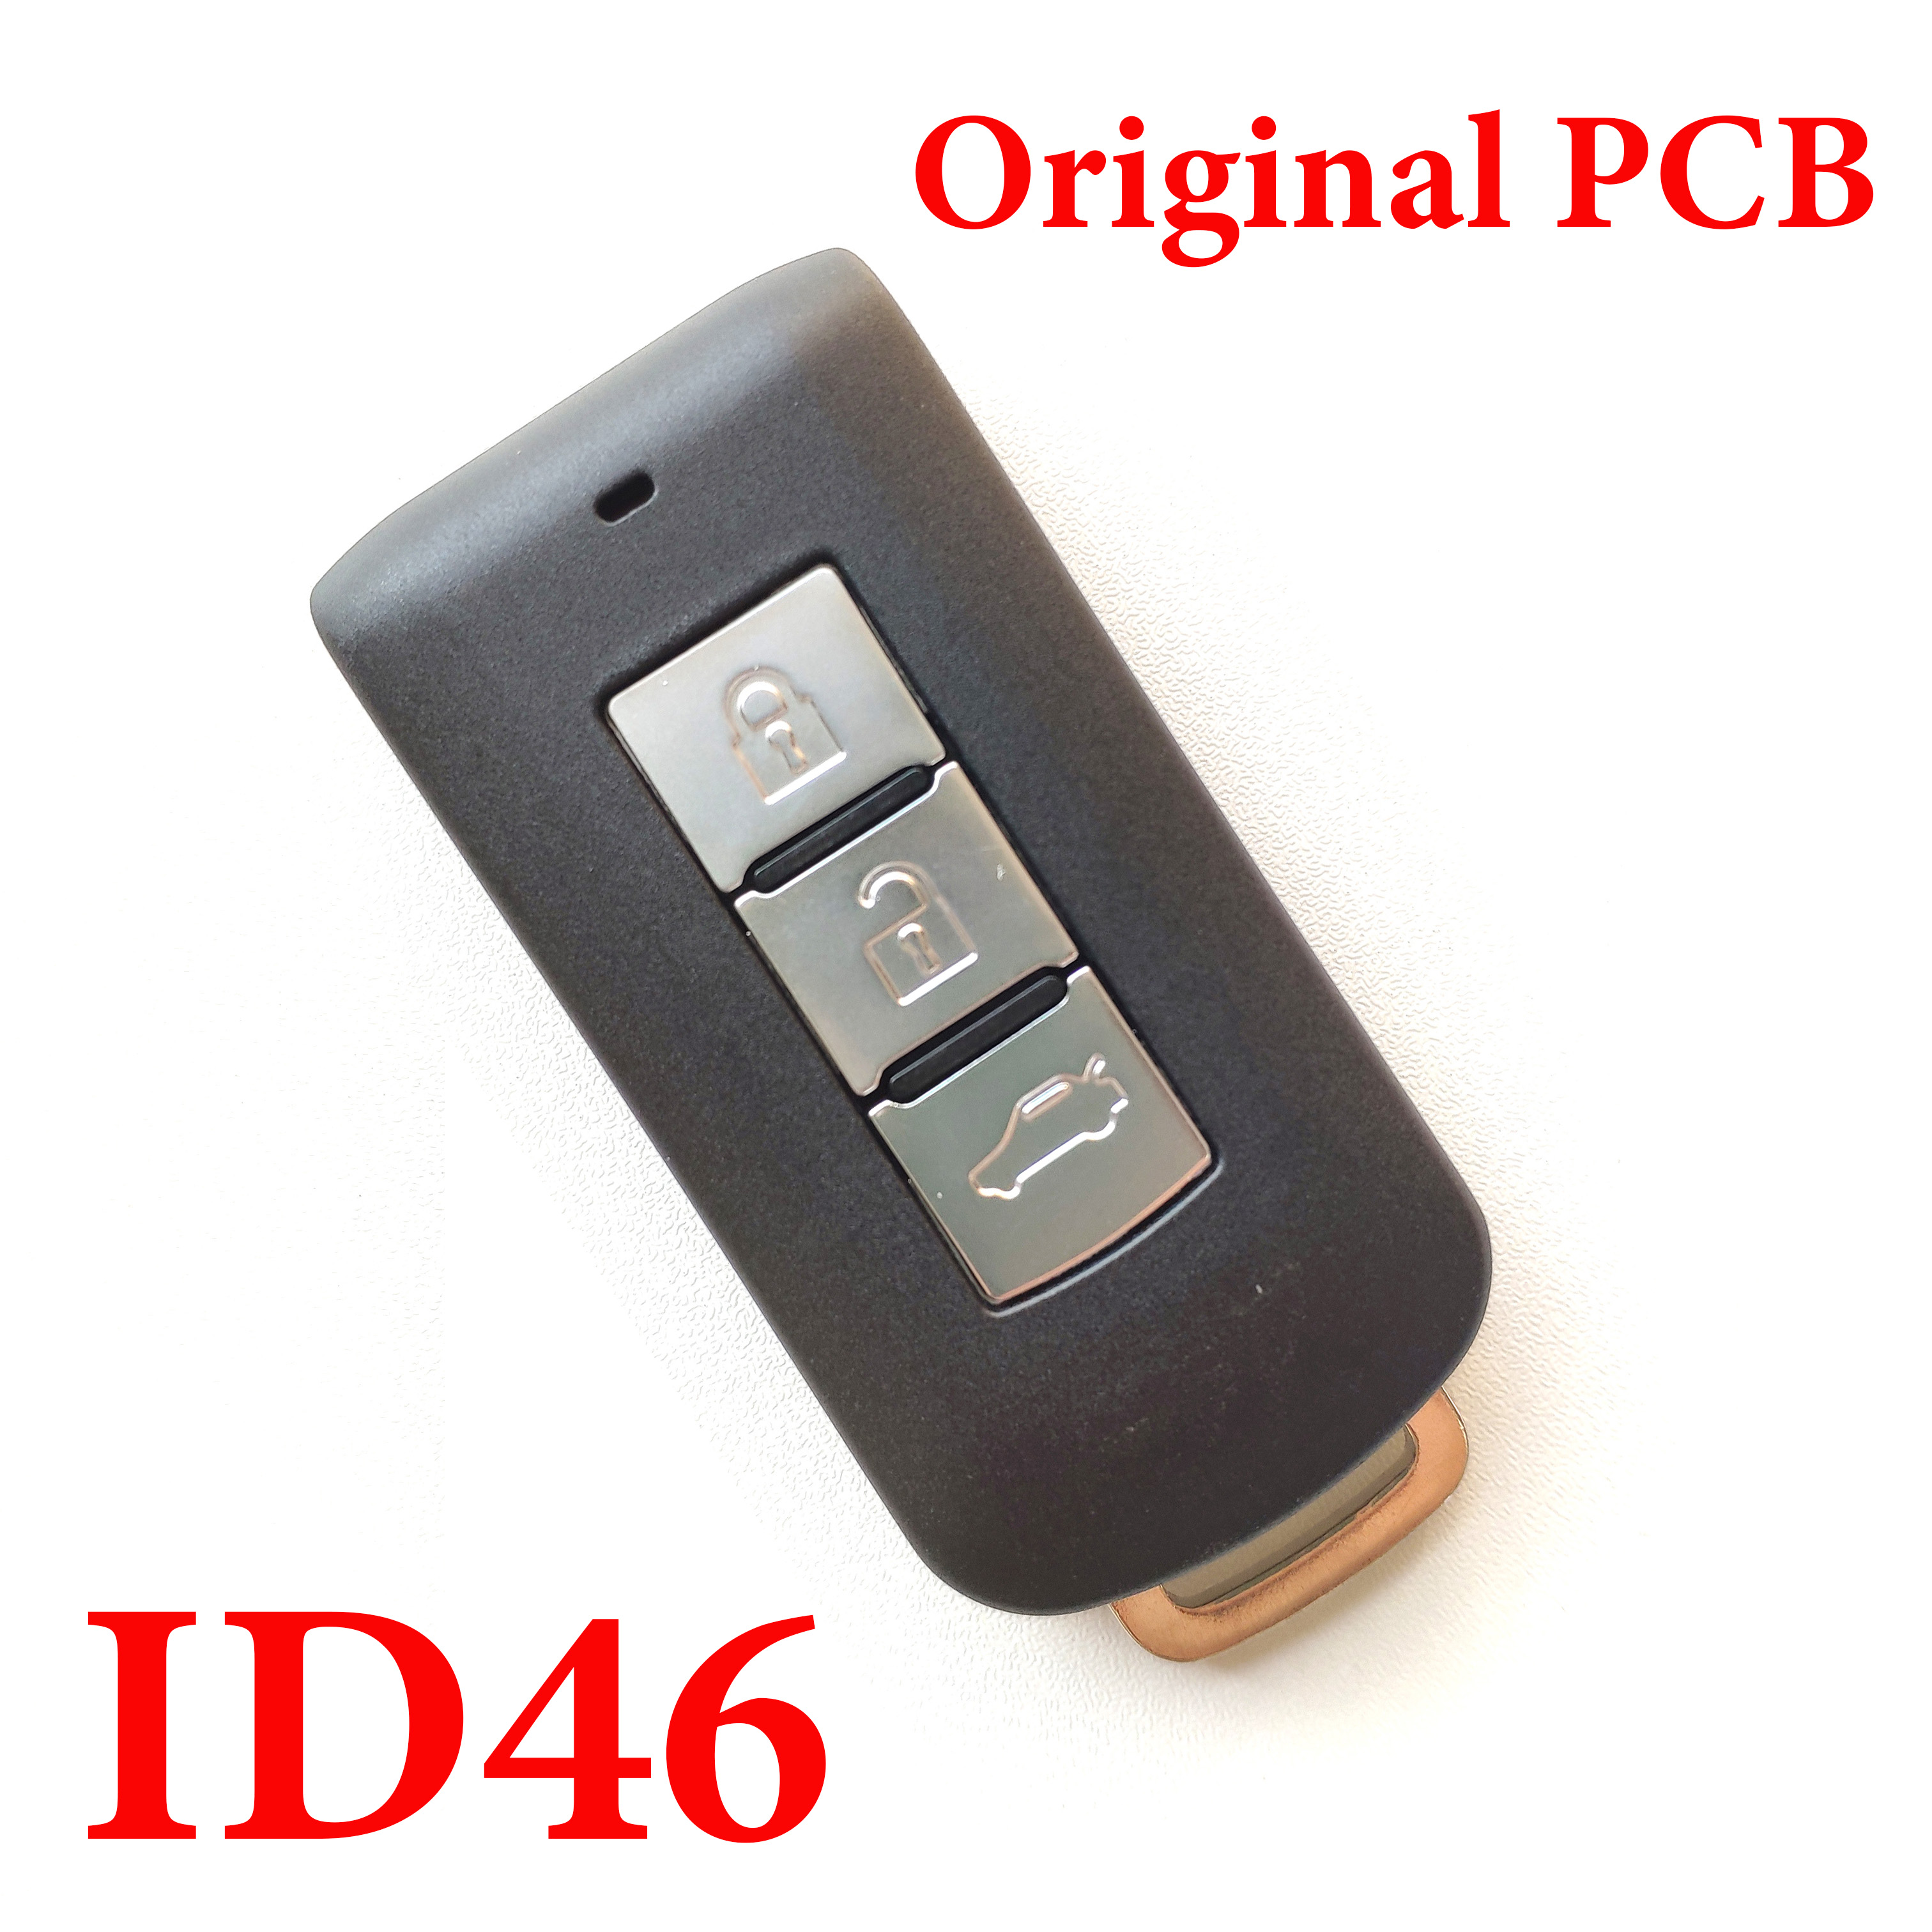 Mitsubishi 3 Buttons 434 MHz Smart Key with Original PCB Board - ID46